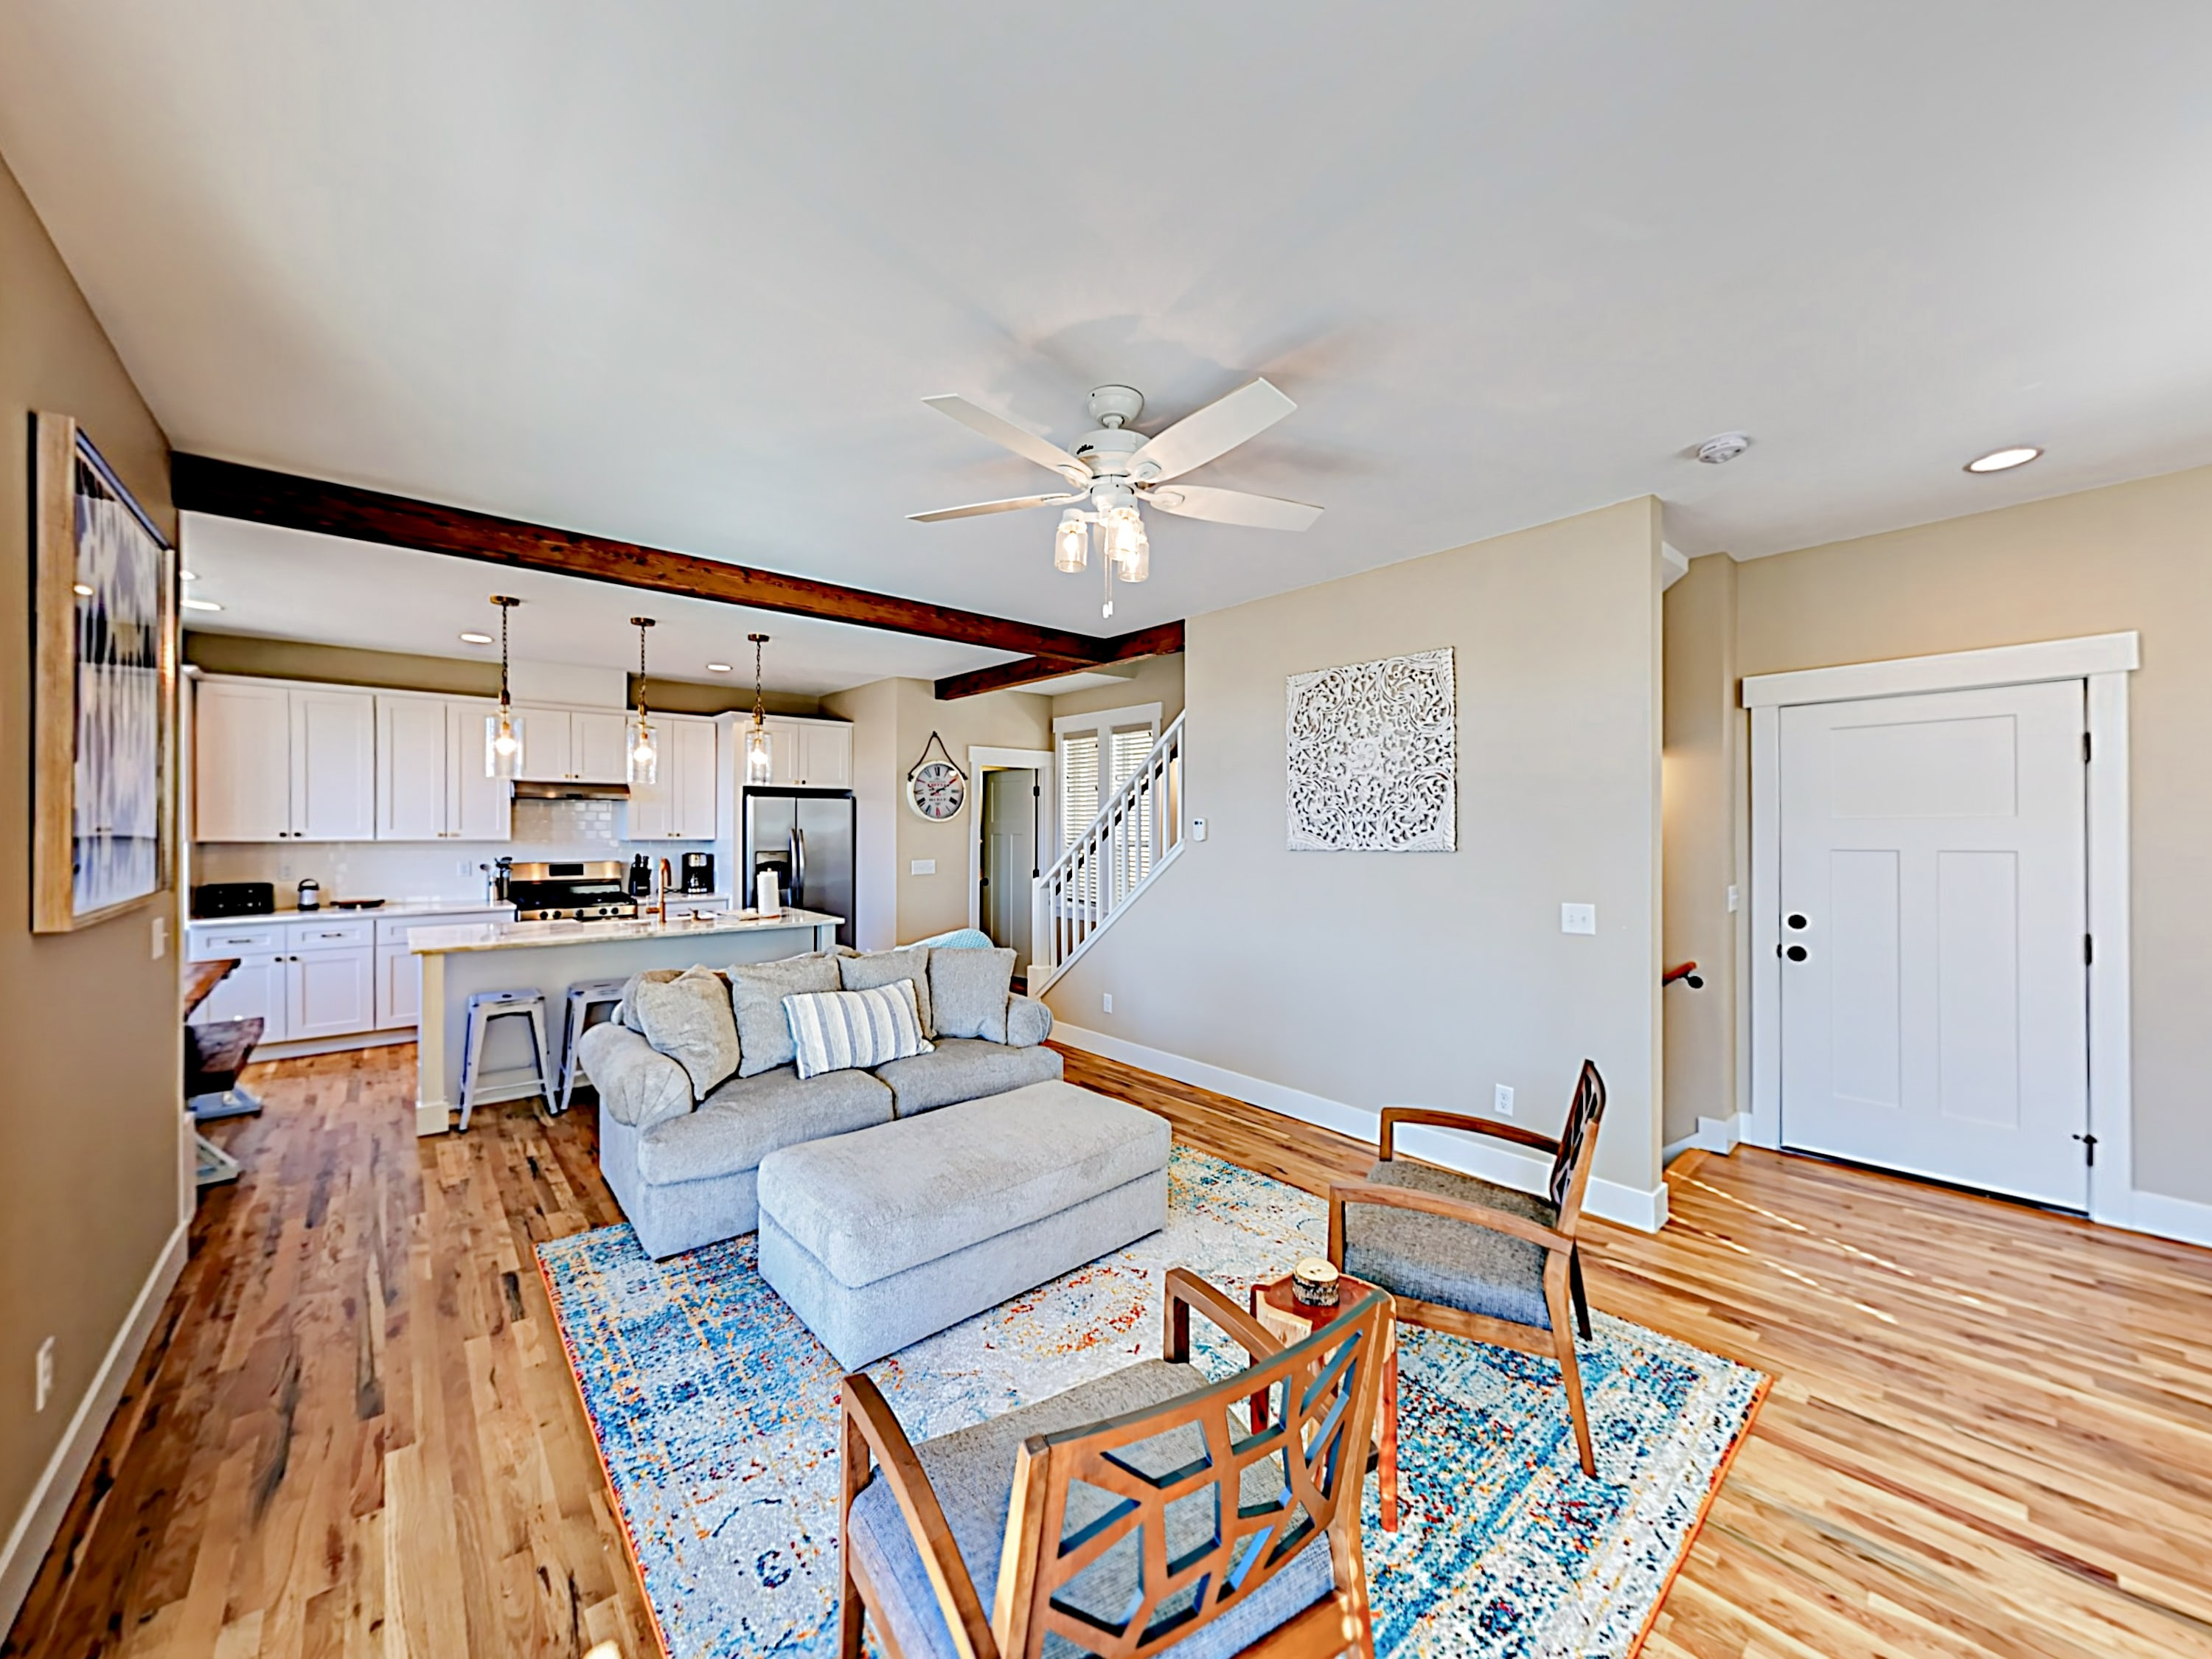 Wood flooring and bright decor highlight the open floor plan in the living area.